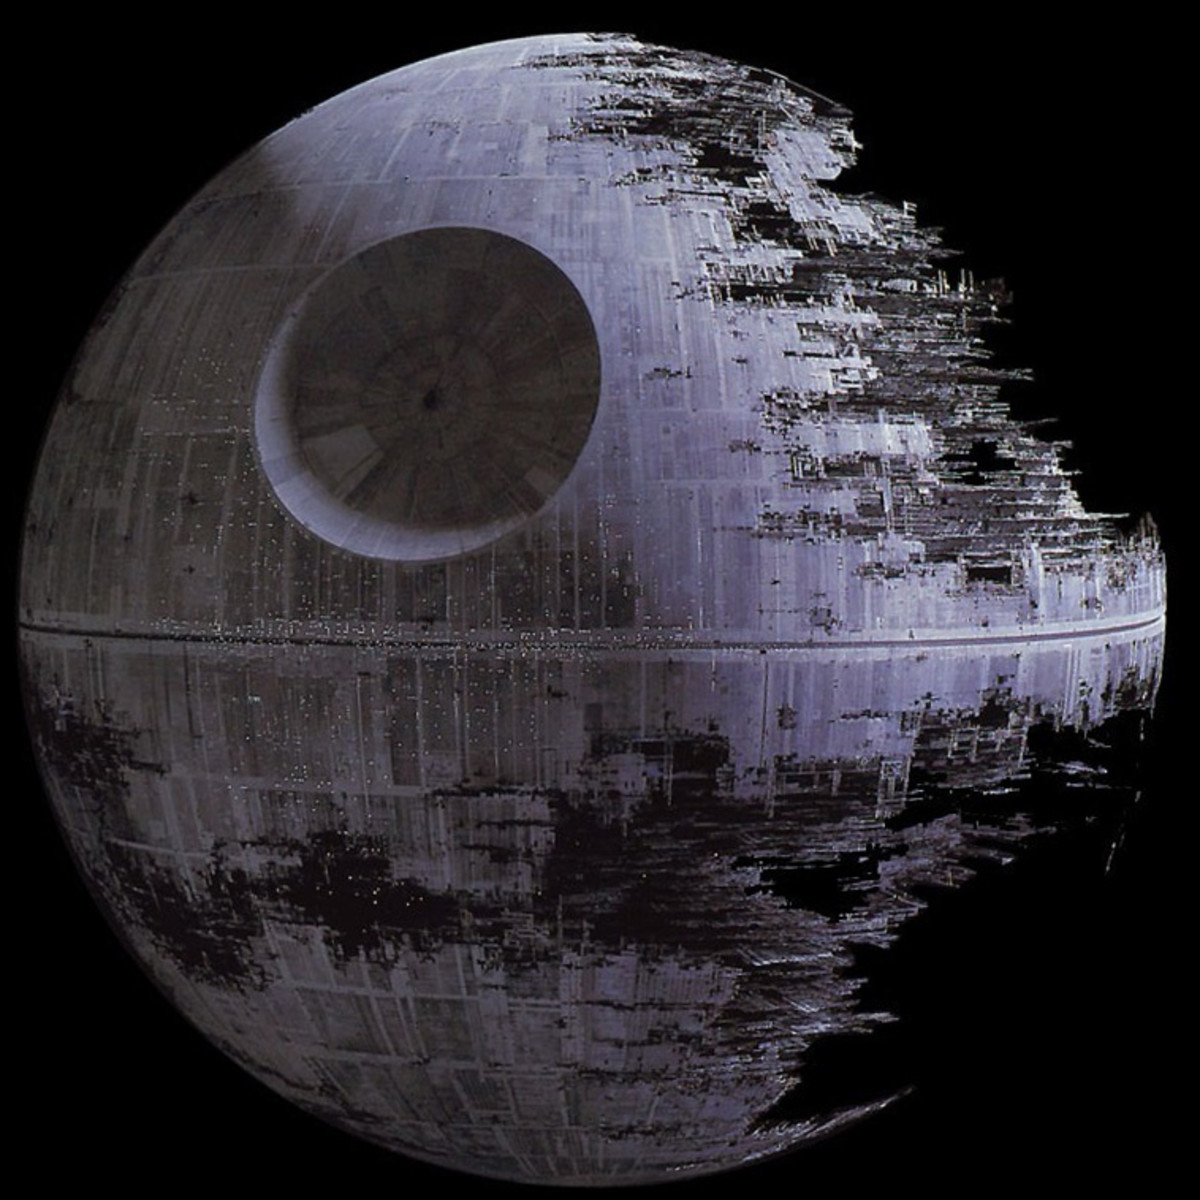 I decided to add this image of the Death Star to the clear sky in the top photo.